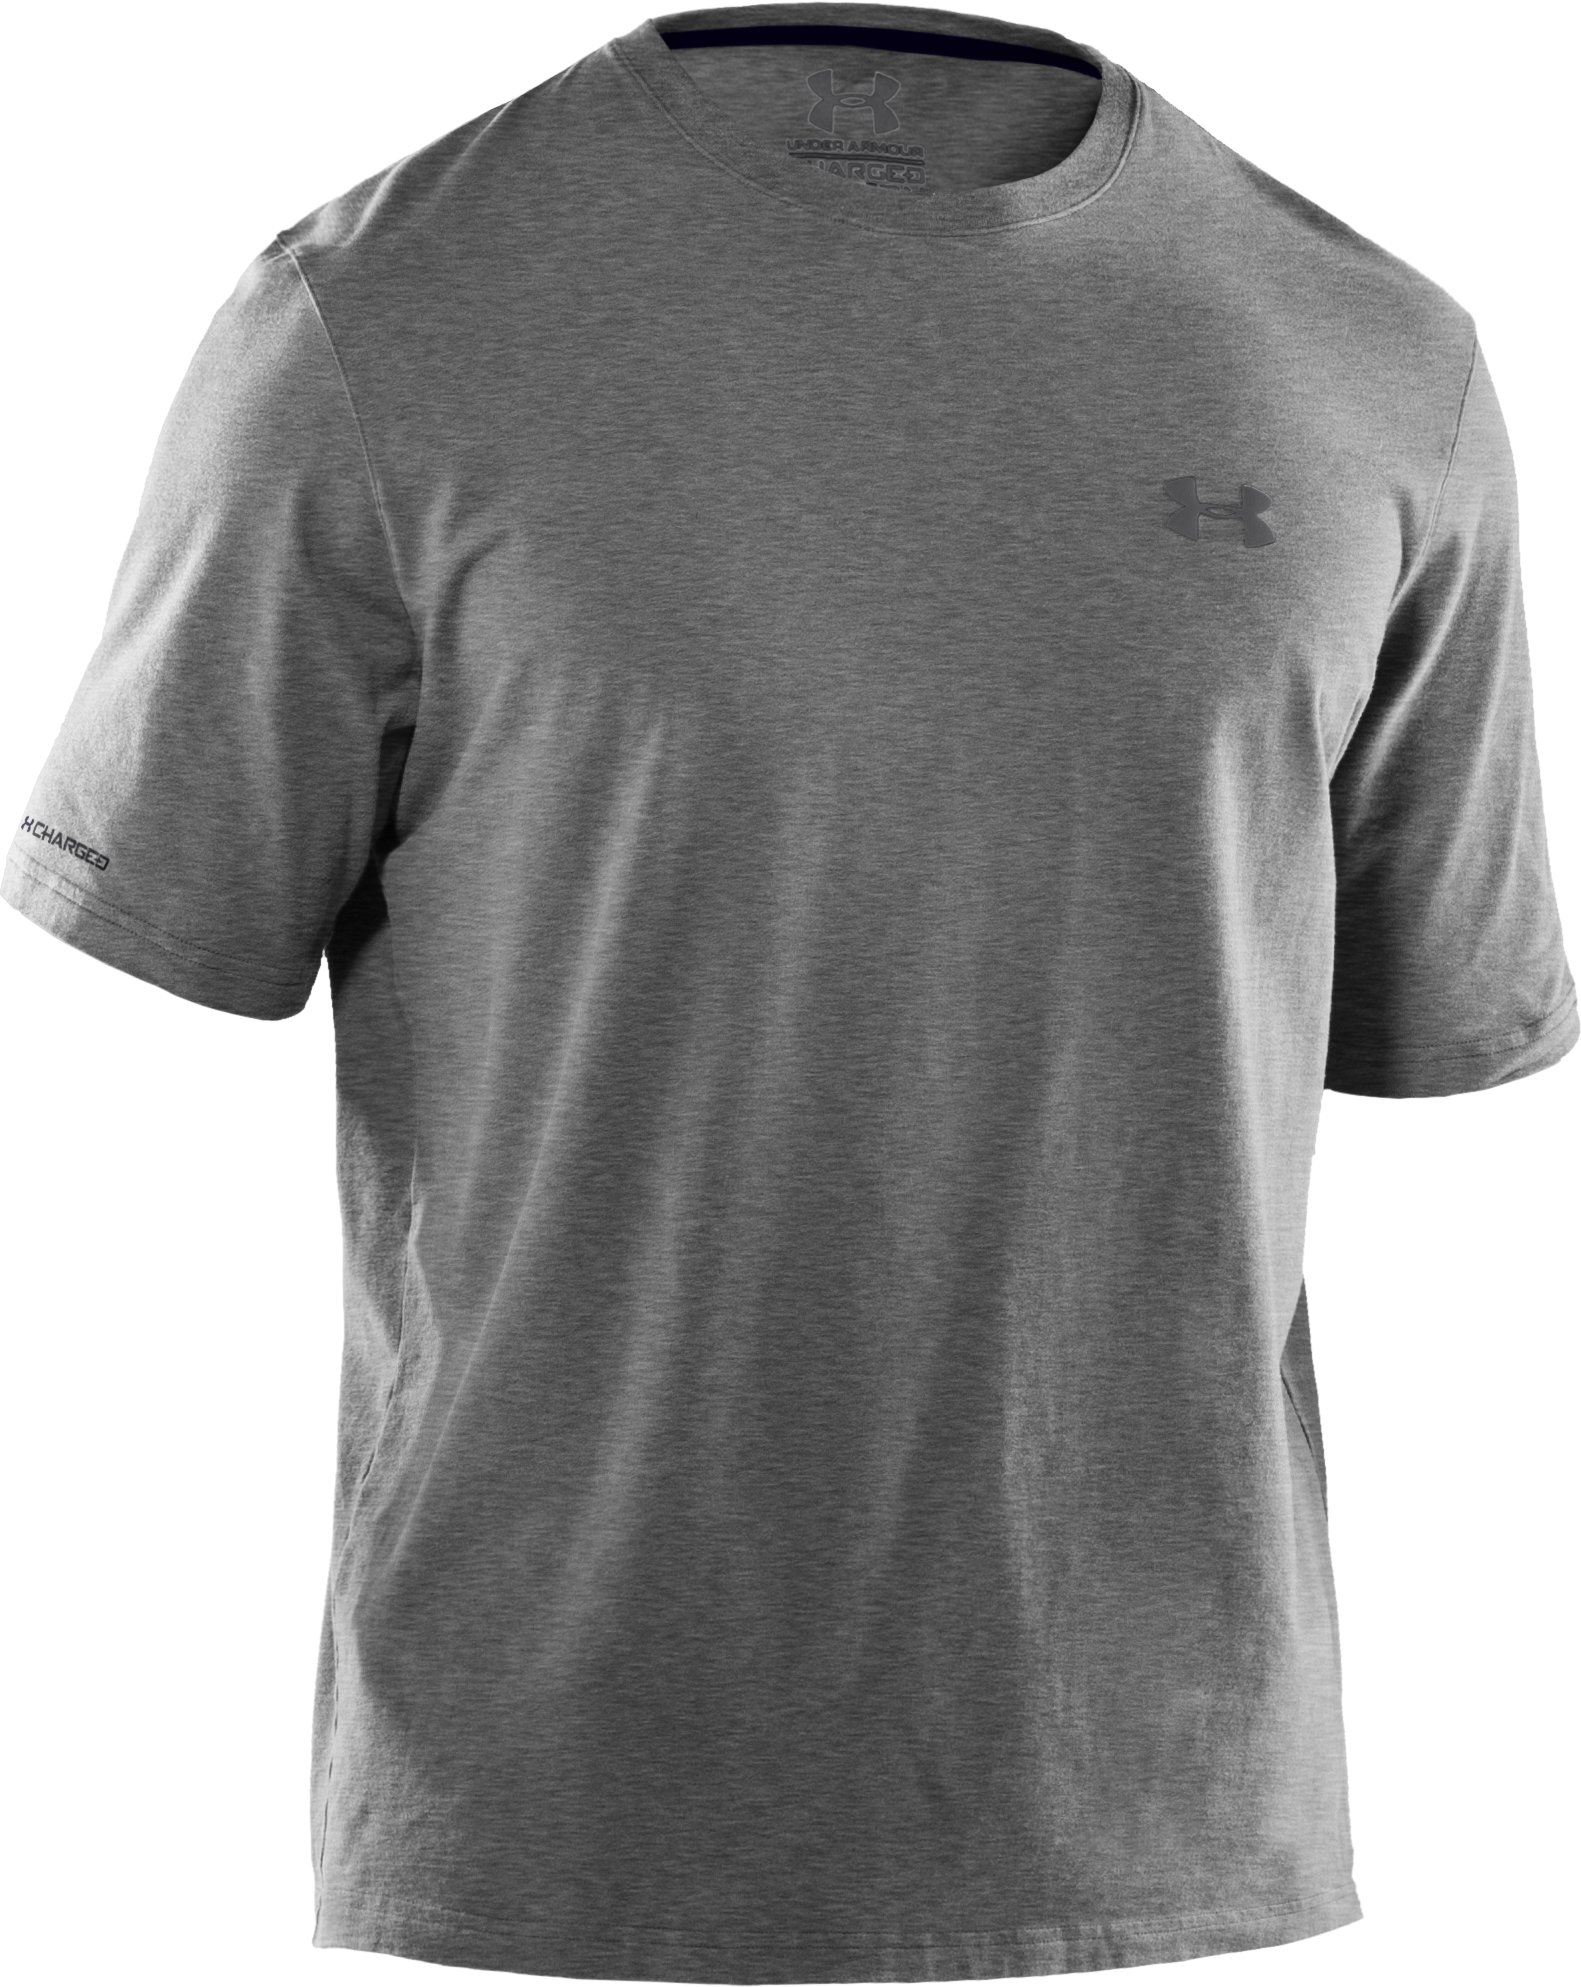 Men's Charged Cotton® T-Shirt, True Gray Heather